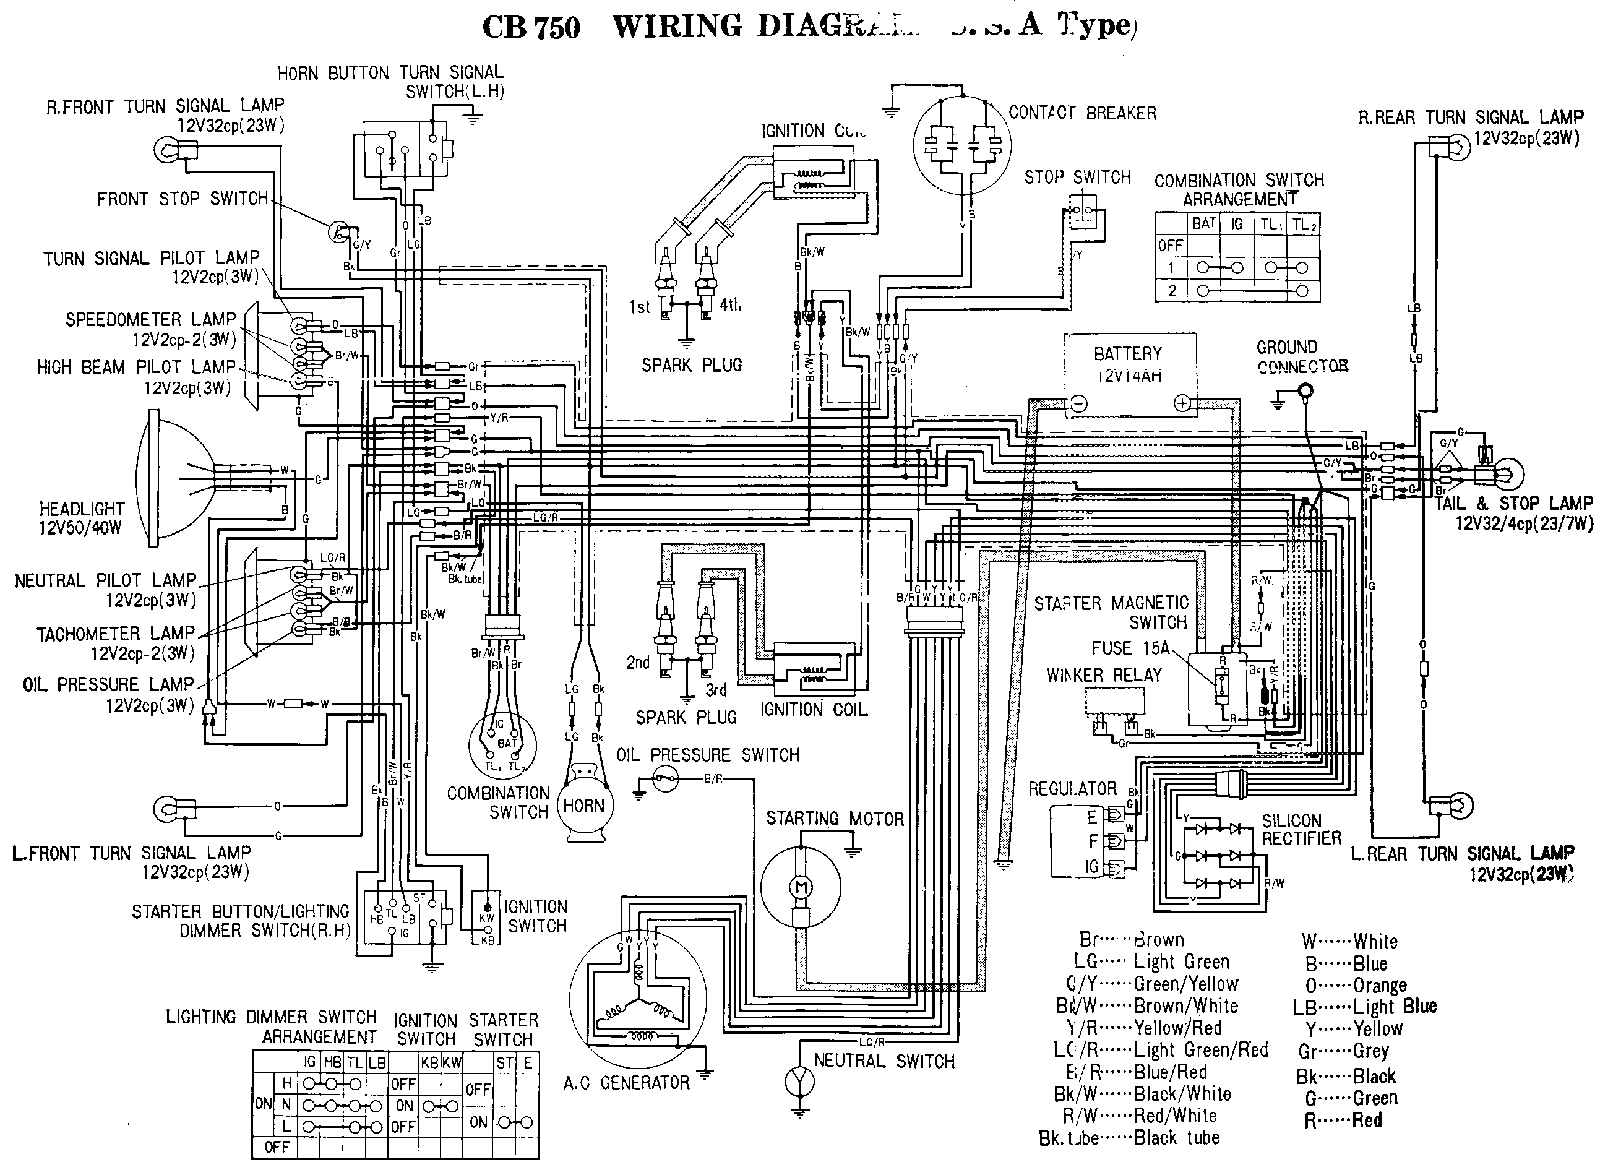 ez go workhorse wiring diagram mc400e picture 6 of 6 from honda cb750 wiring diagrams